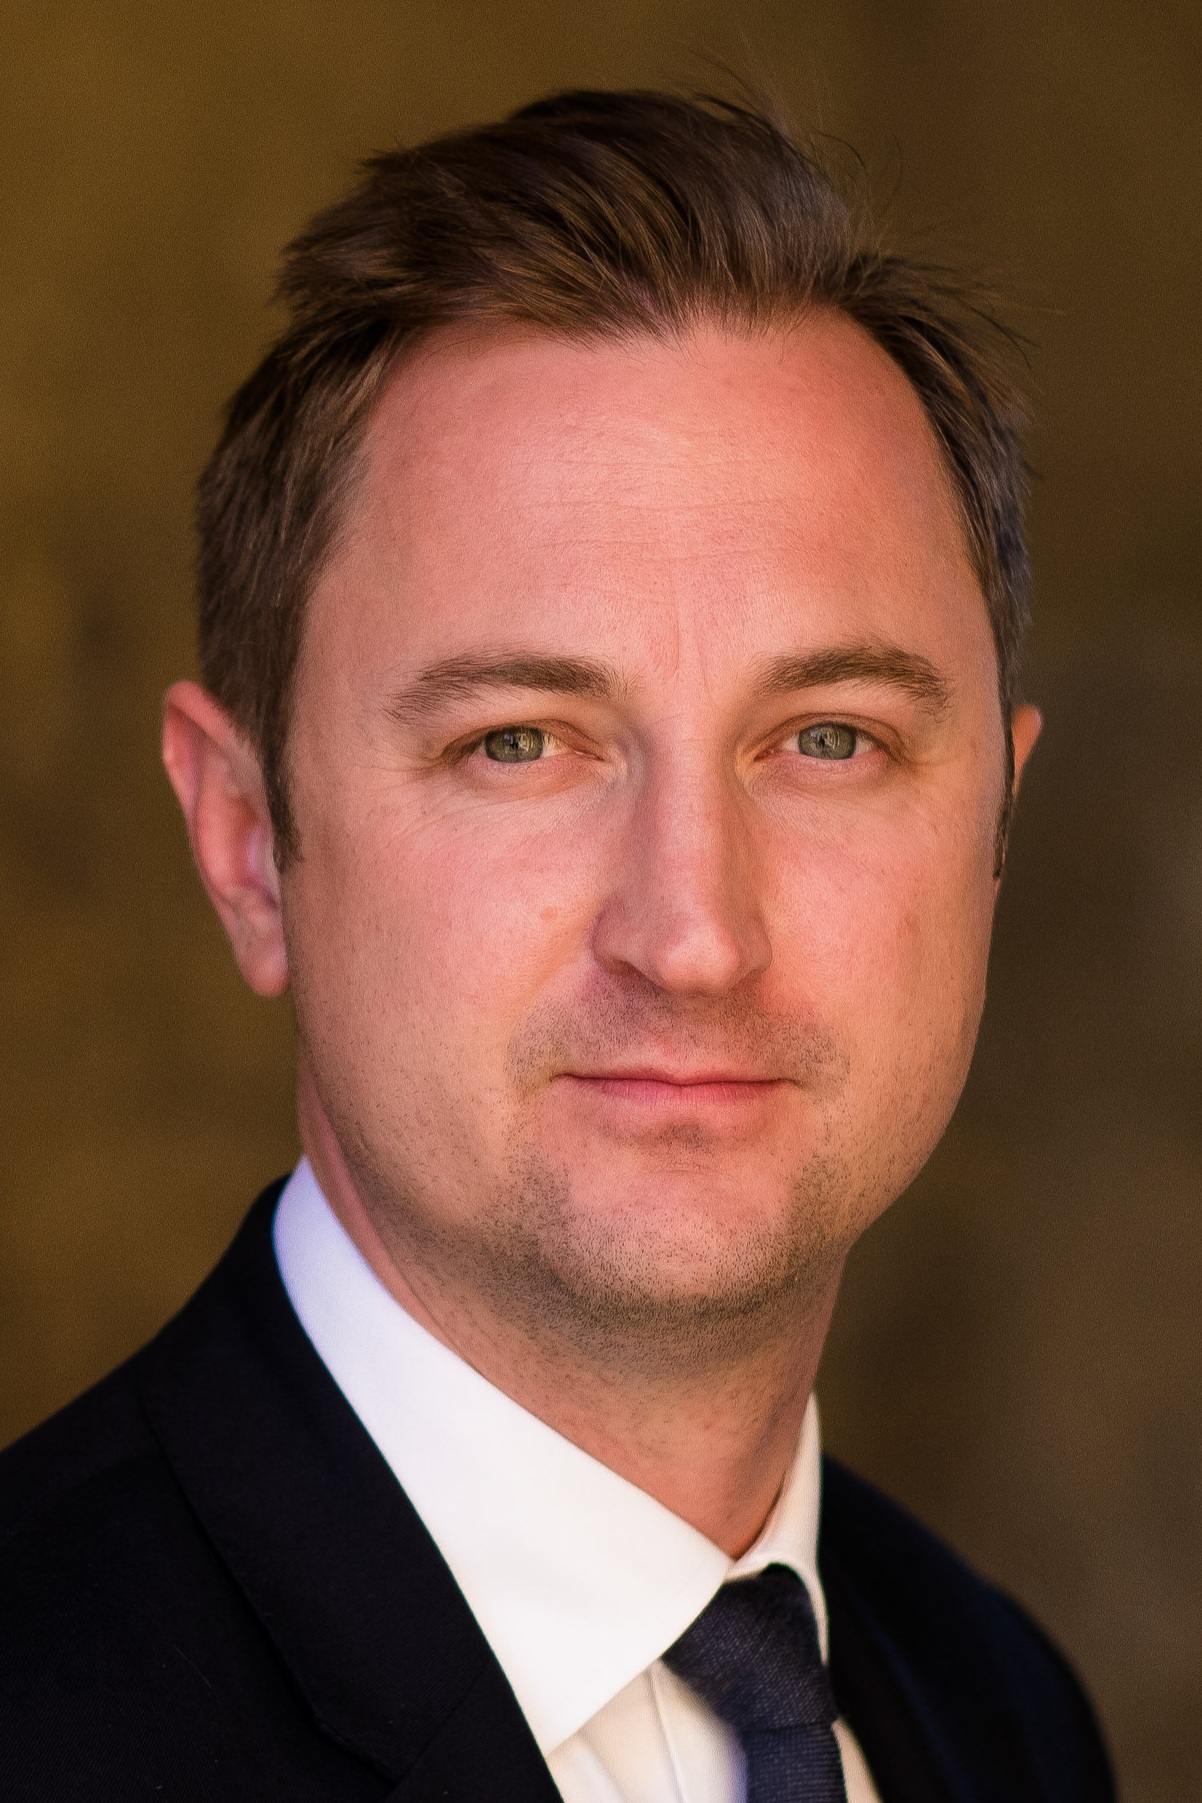 DAVID K. YOUNG   Oxford Analytica  Chief Executive Officer